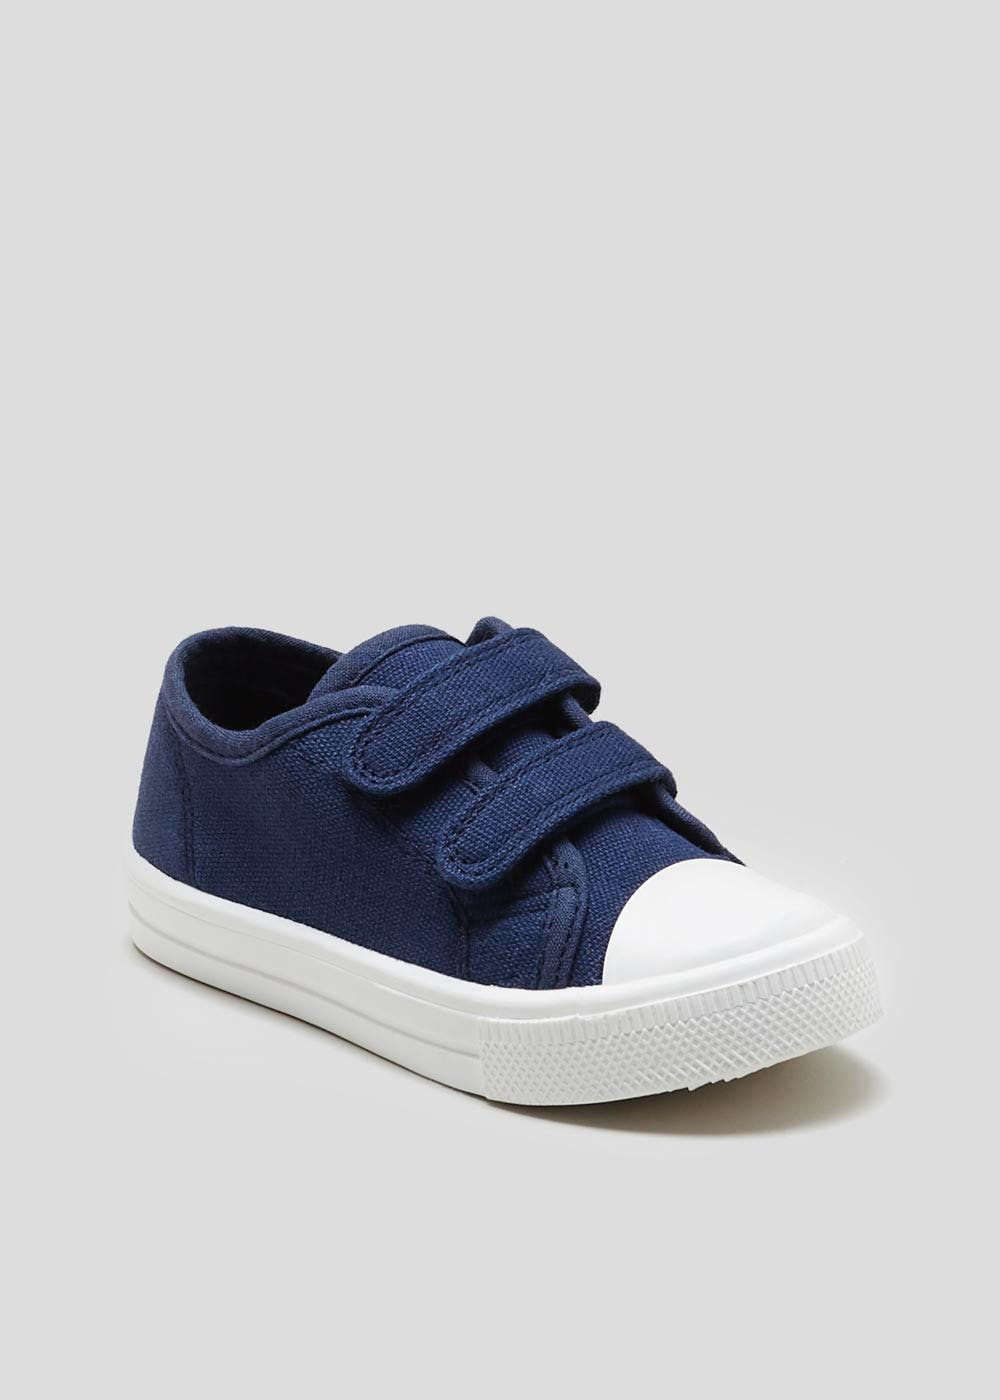 56c42b822 Matalan SPECIAL BUYS Kids Double Strap Canvas Pumps (Younger 4-12)